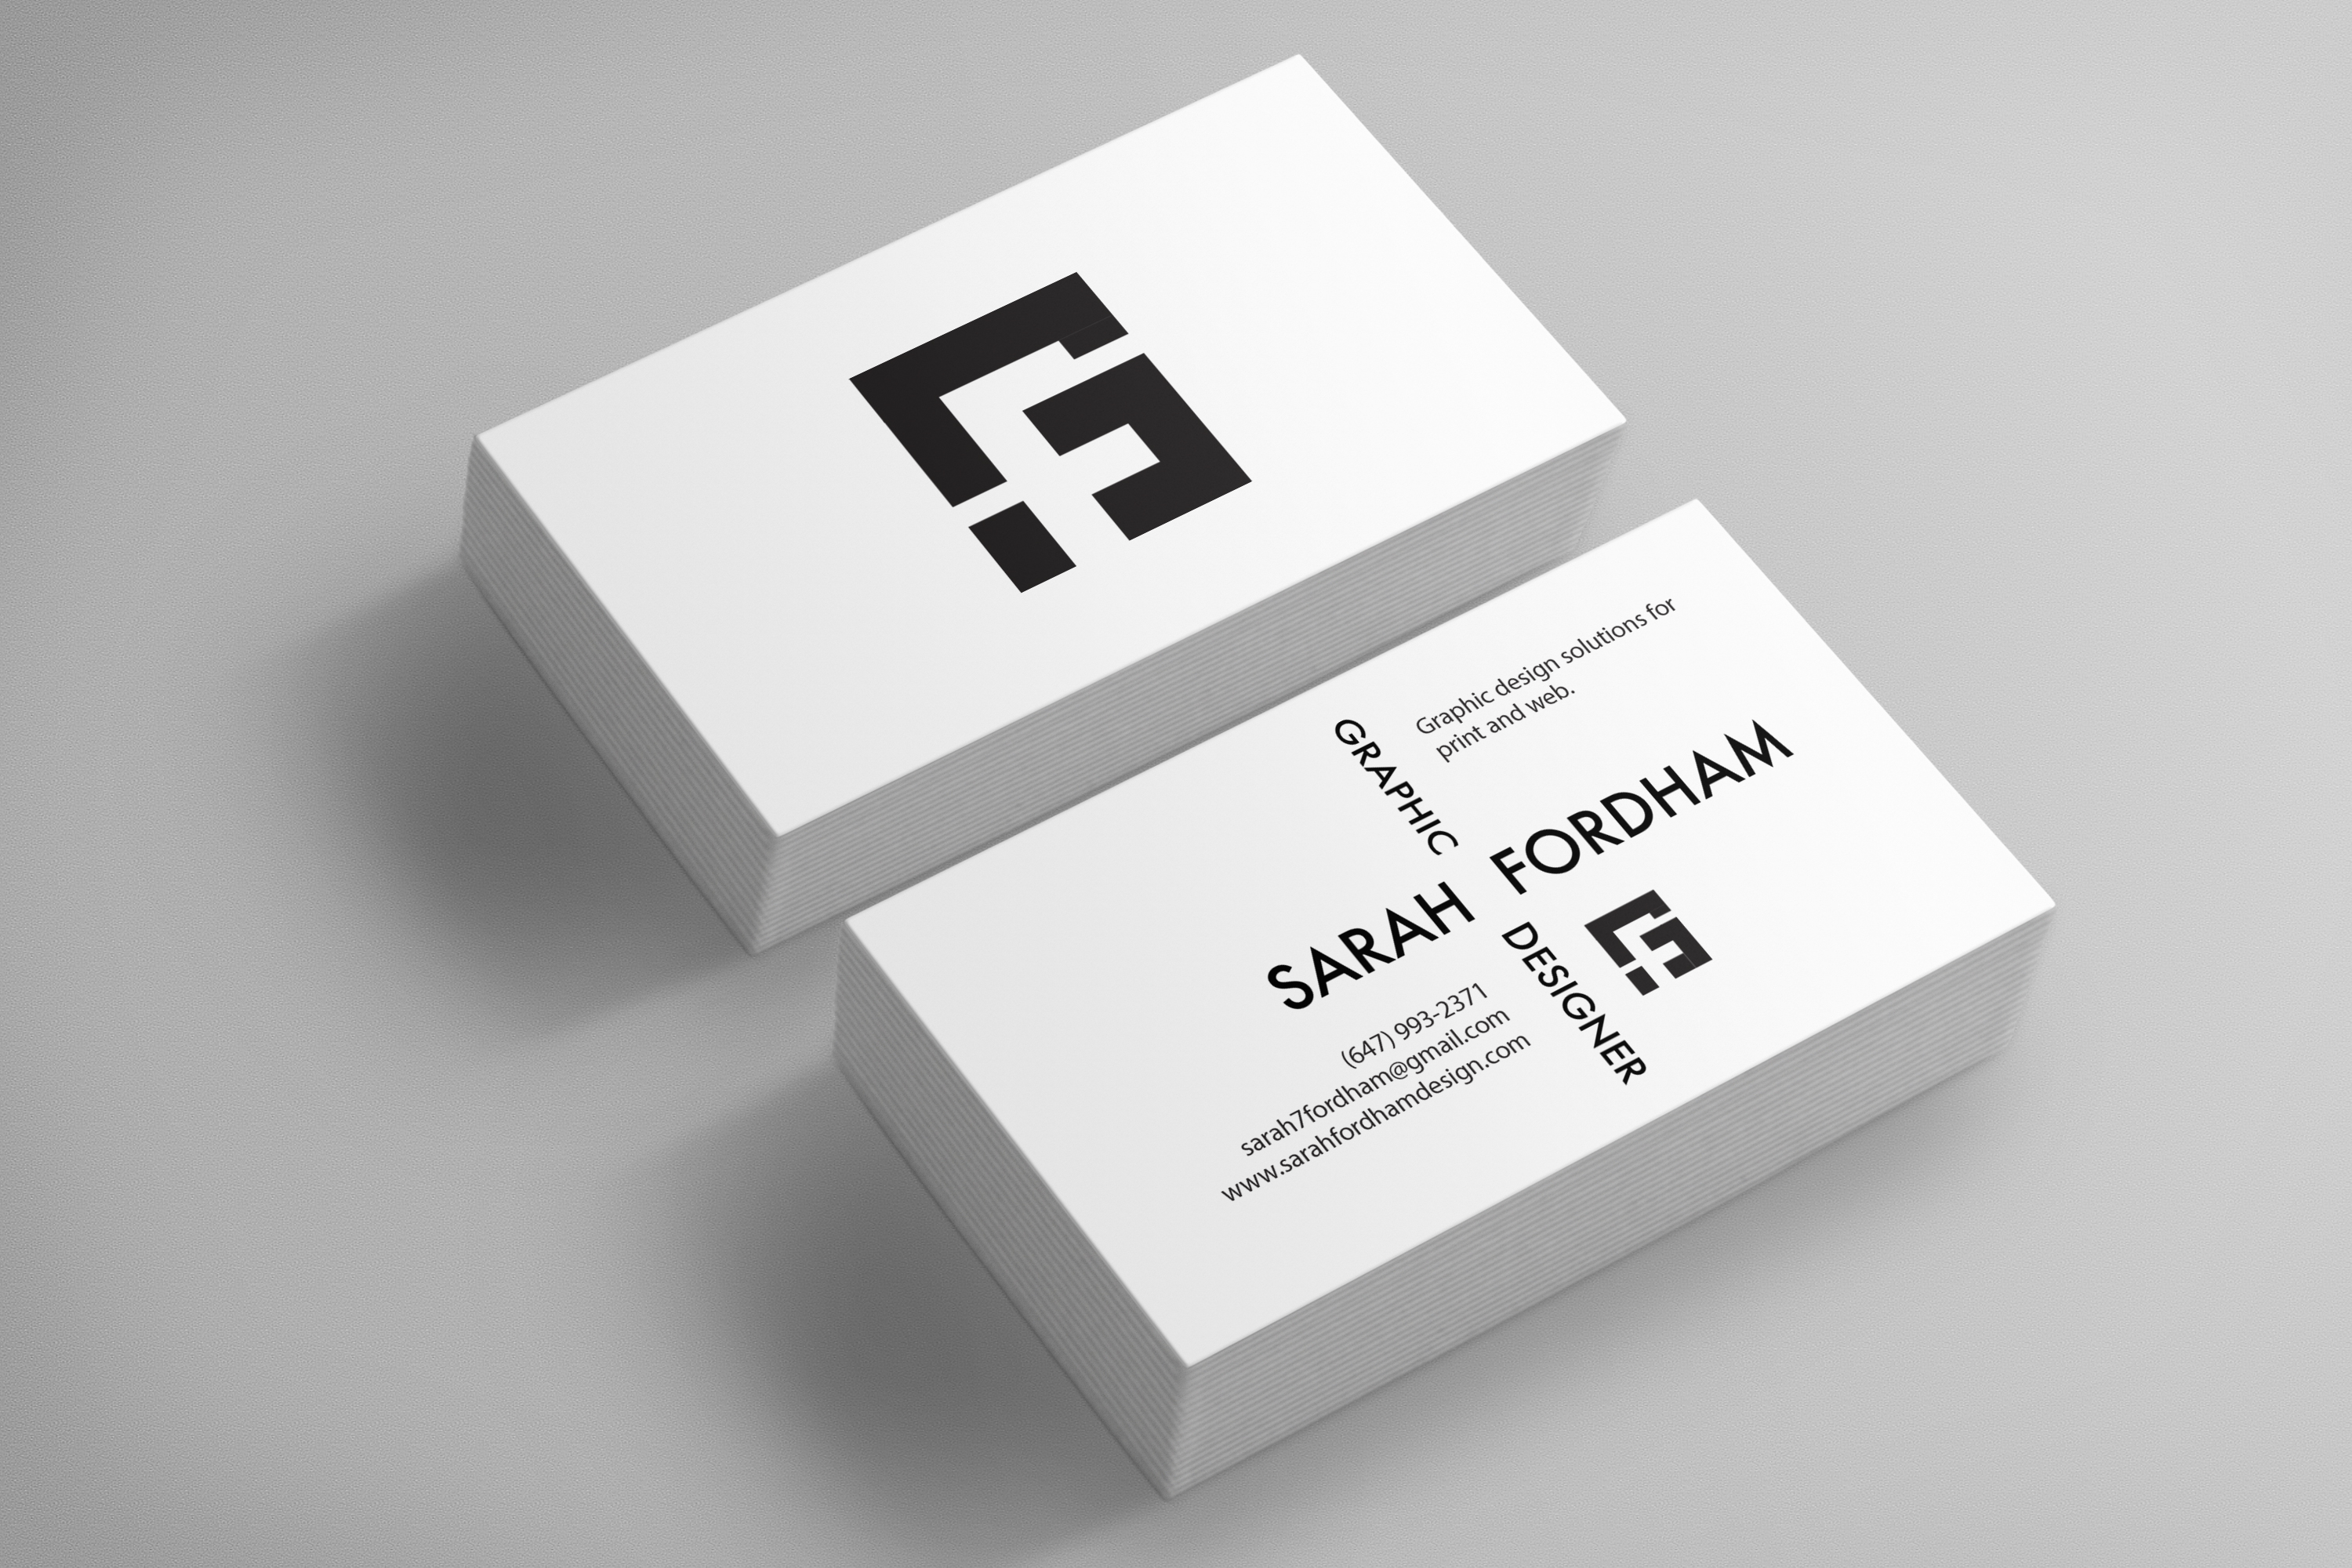 Personal branding sarah fordham sf business cards front digital colourmoves